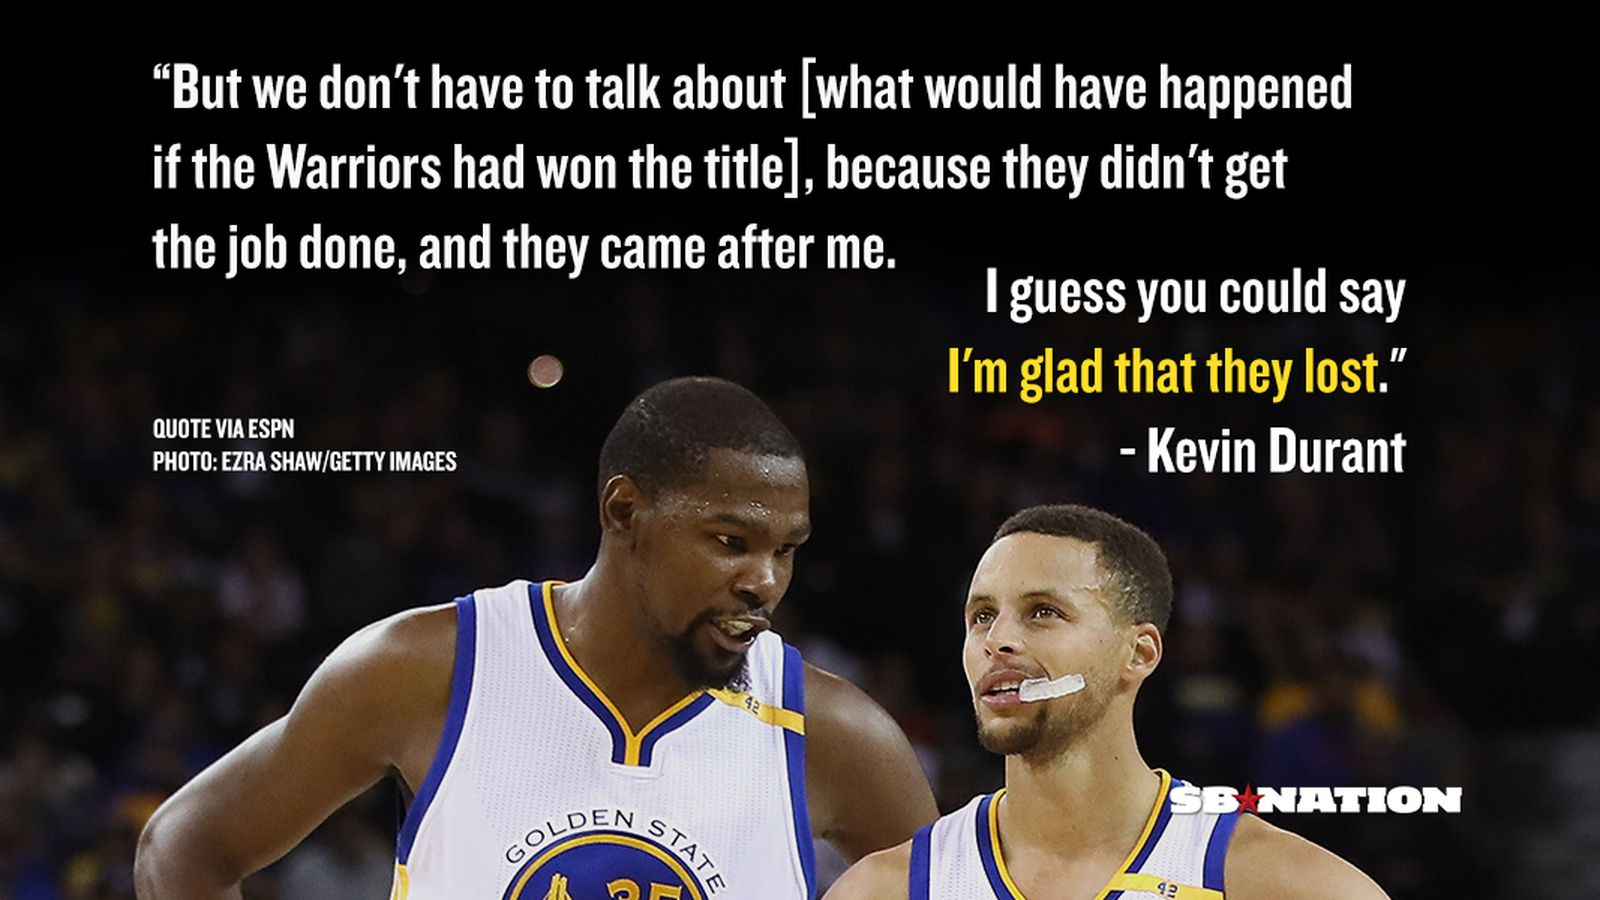 Kevin Durant says he's glad the Warriors blew a 3-1 lead in the NBA Finals